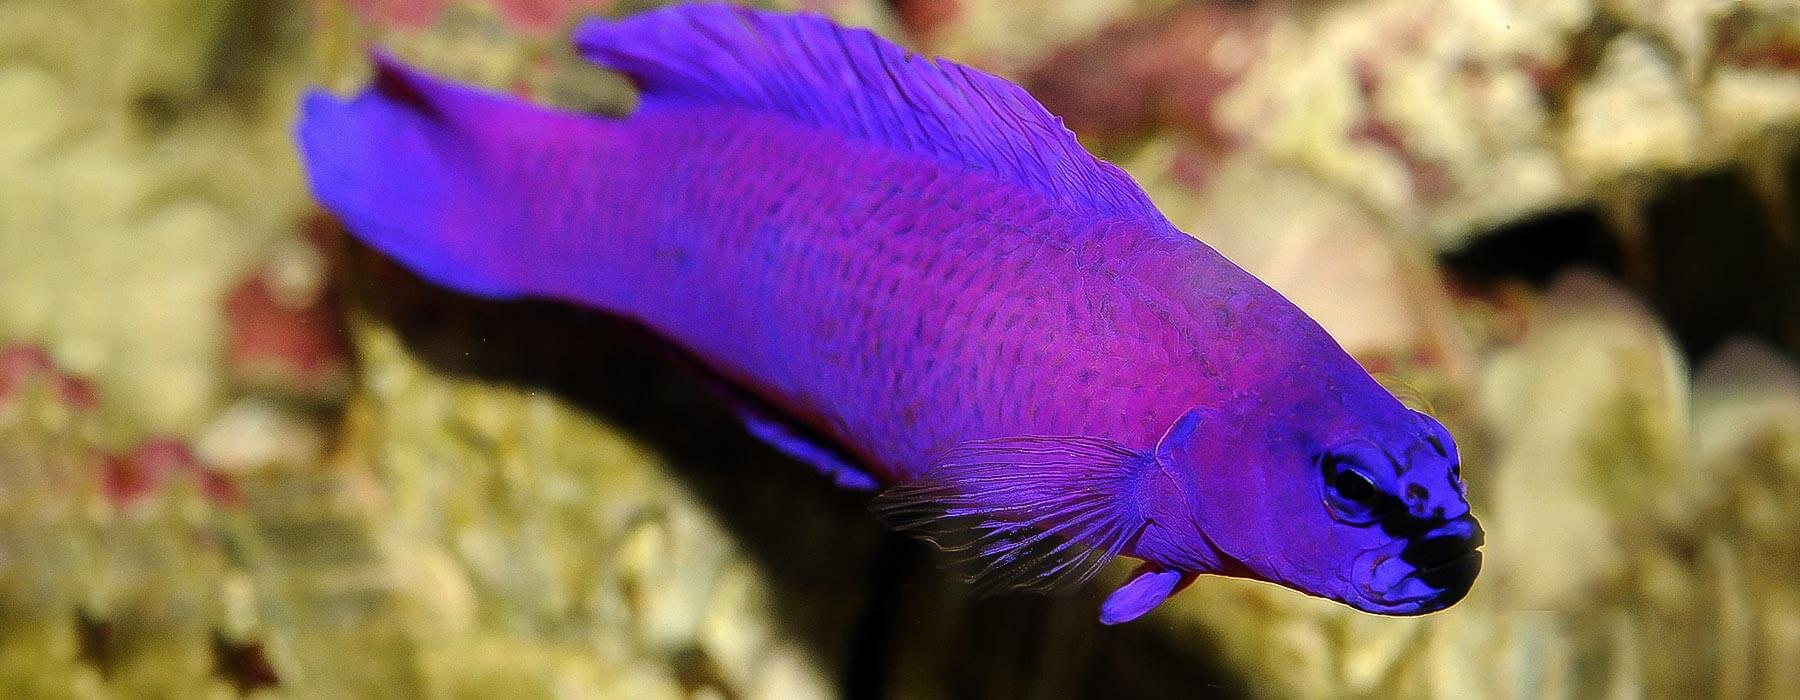 PSEUDOCHROMIS-ORCHIDEE